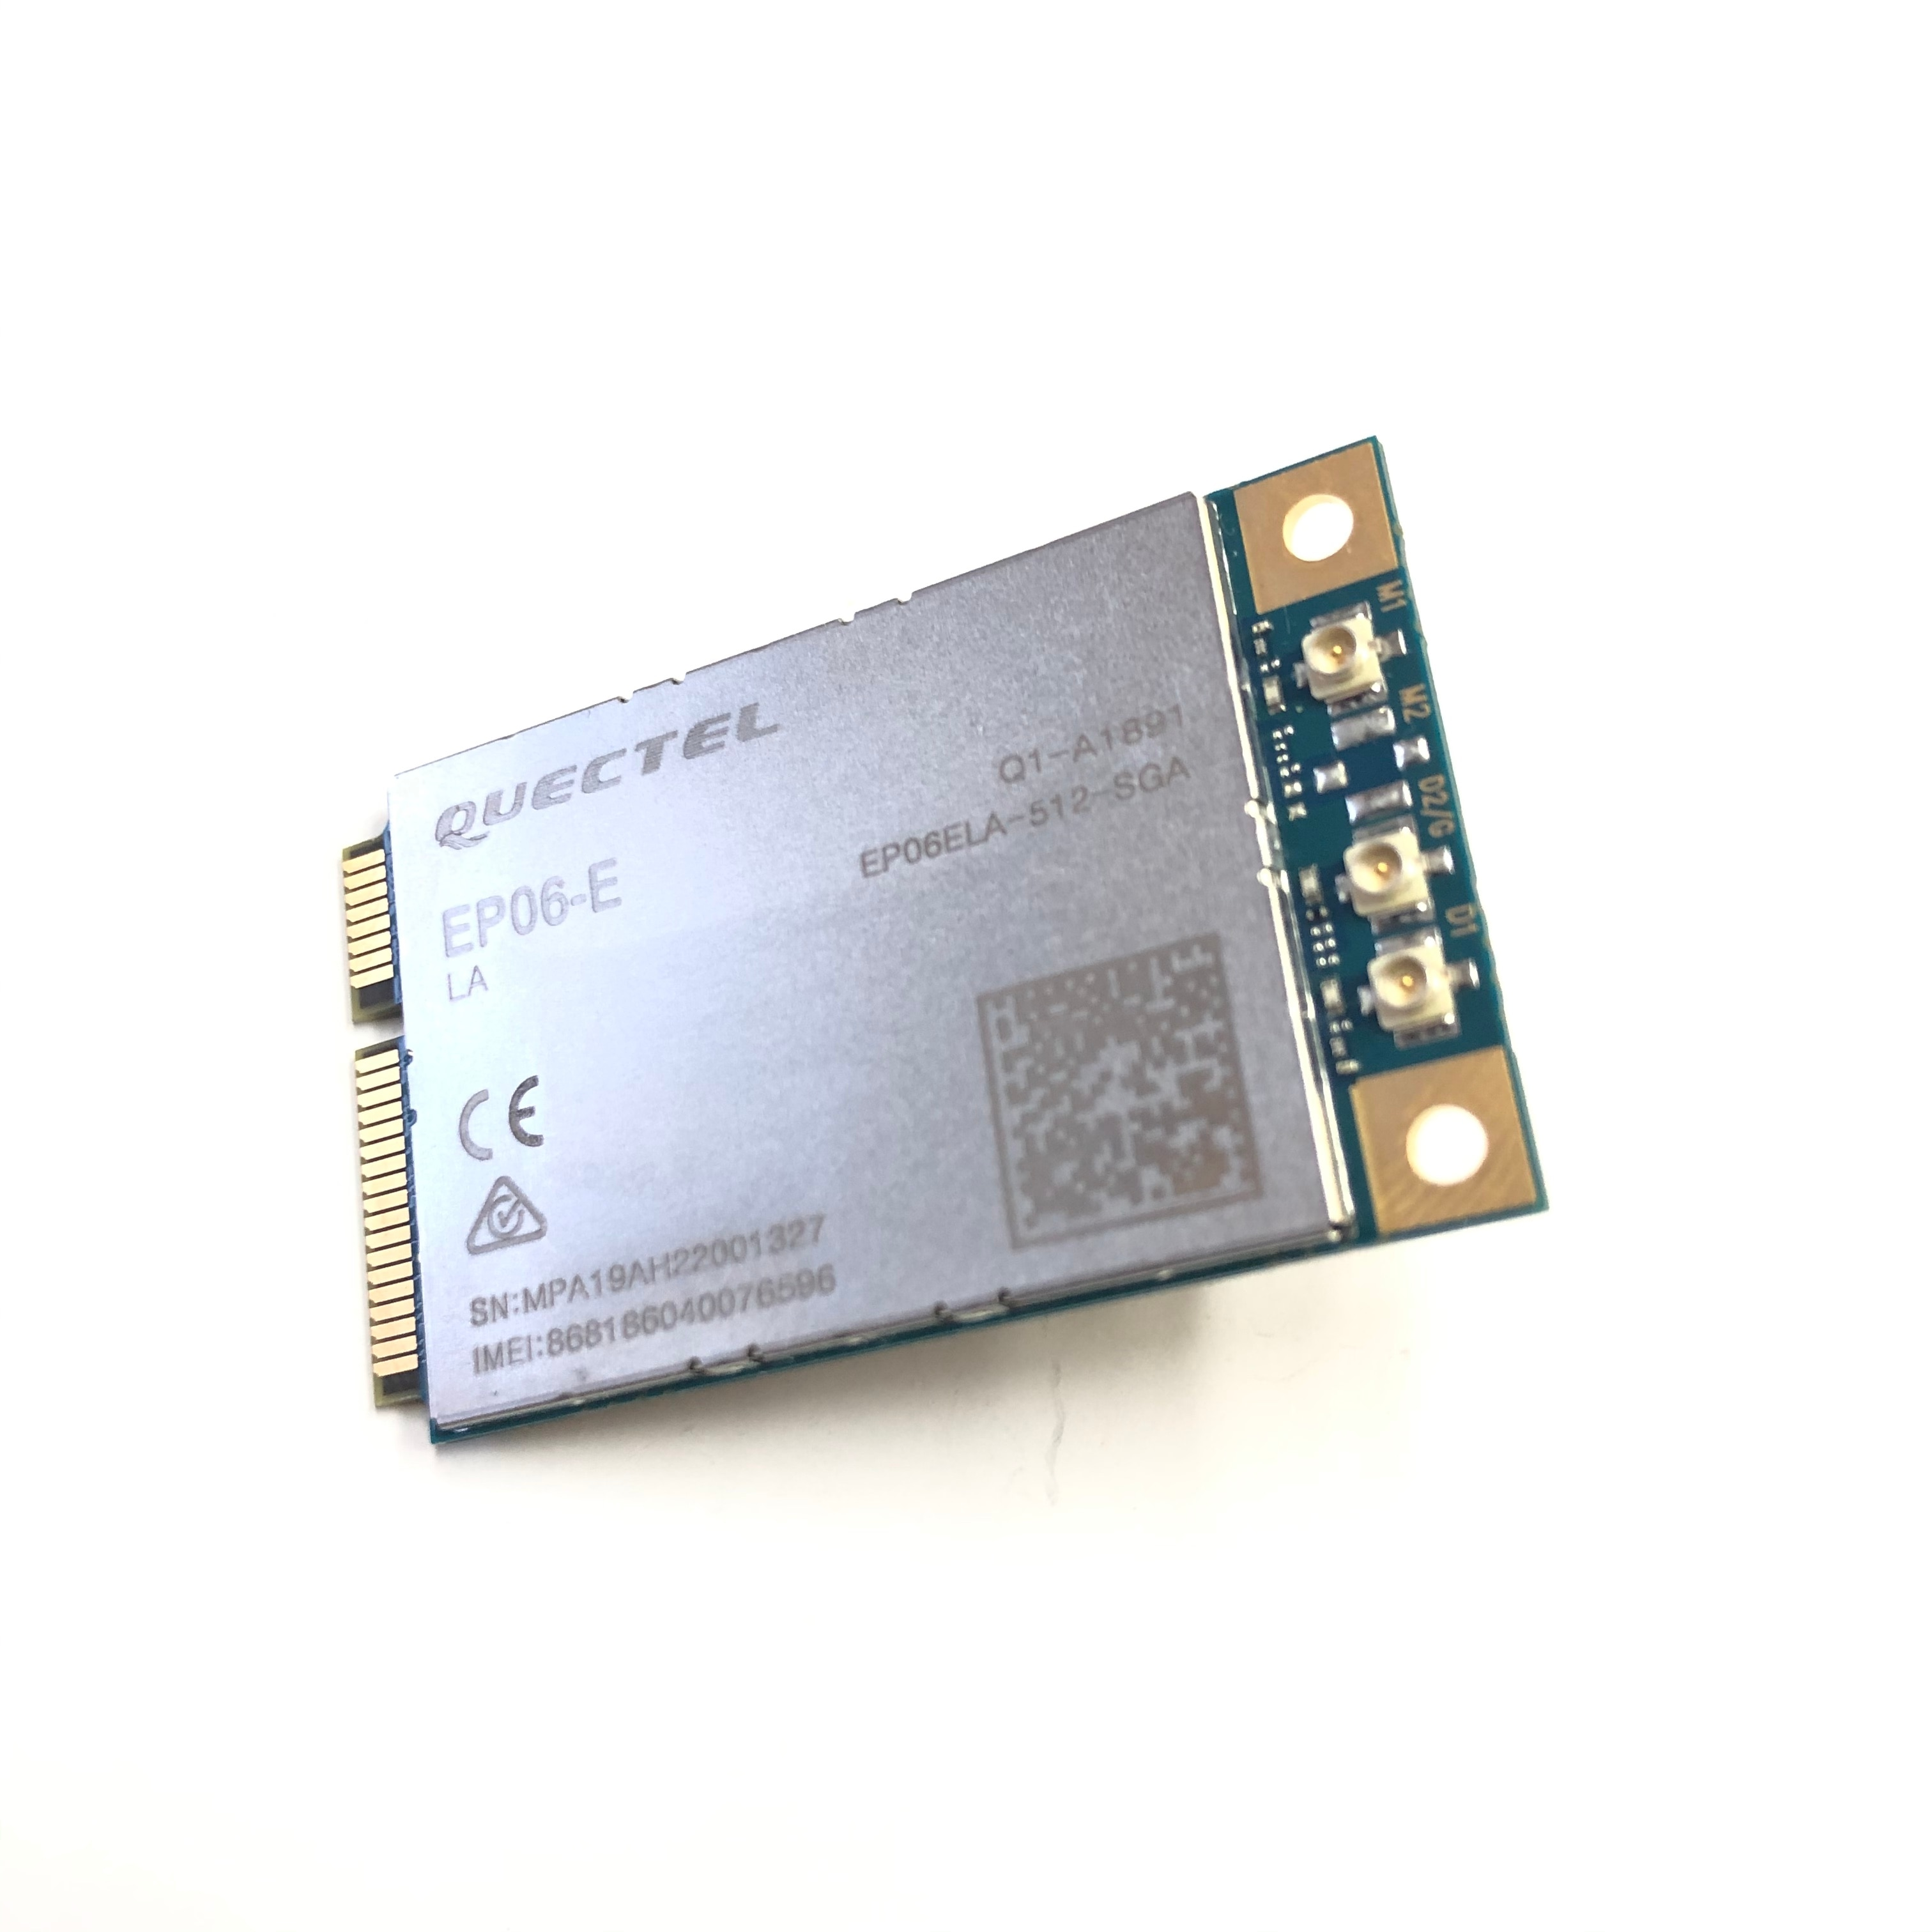 EP06-E LTE Cat 6 module with Mini PCIe Form Factor EP06 4G Modules fit for M2M and IoT Applications EP 06 enlarge